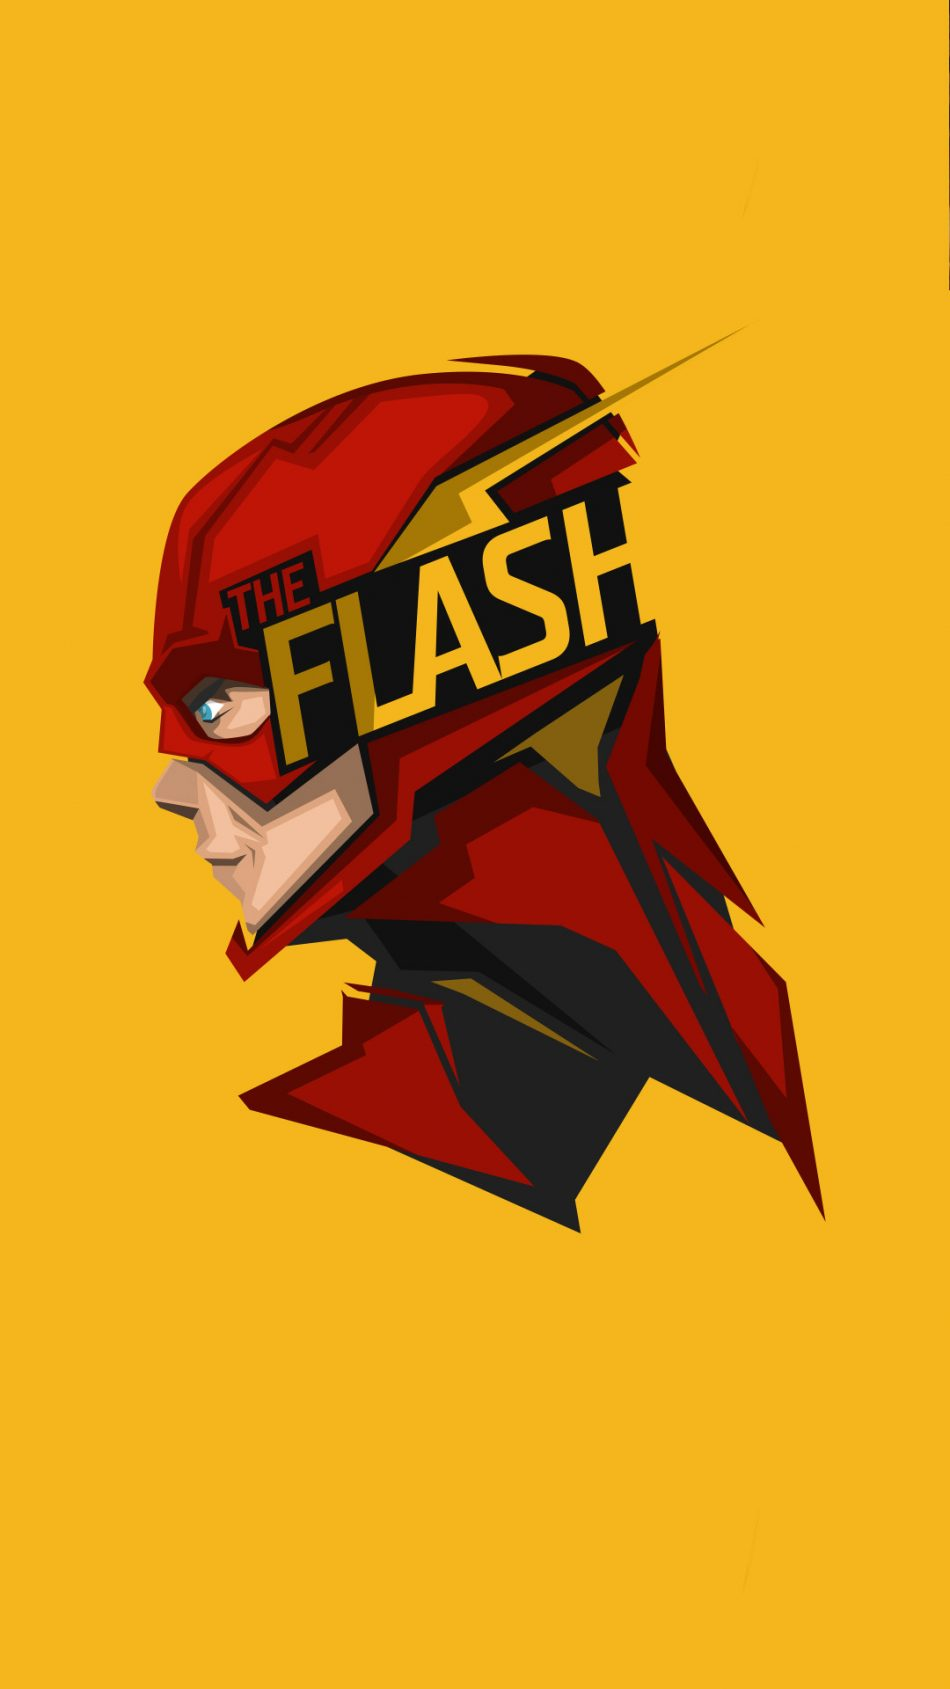 the flash minimal artwork - download free 100% pure hd quality